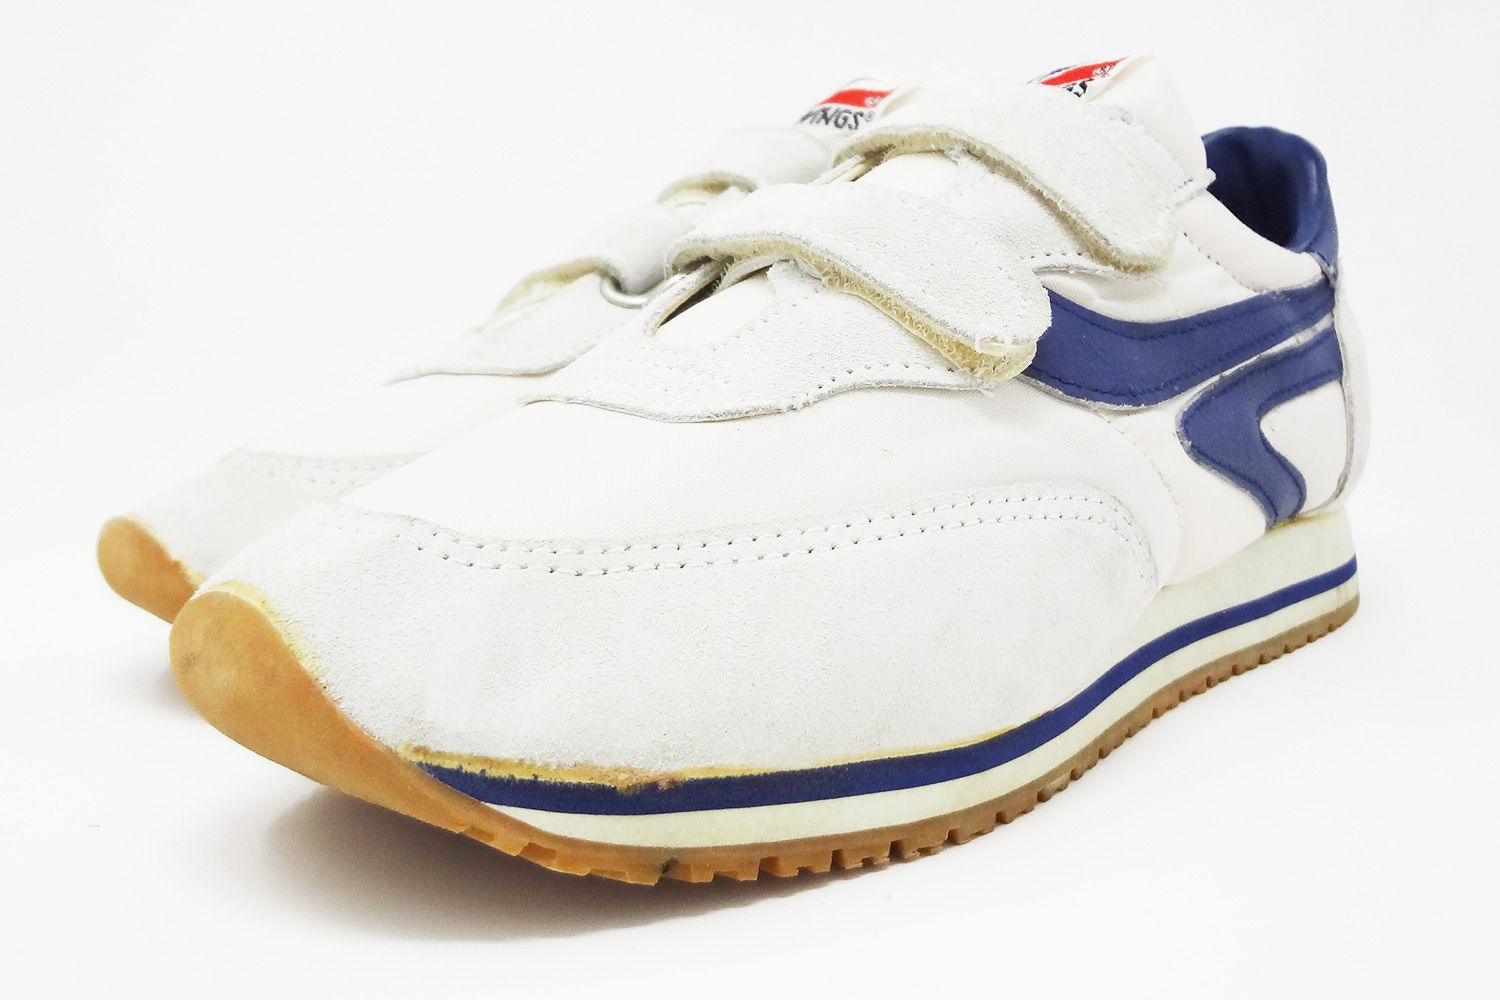 The Deffest A Vintage And Retro Sneaker Blog Pro Wings 80s Vintage Sneakers In 2020 Vintage Shoes Men Vintage Sneakers Retro Sneakers